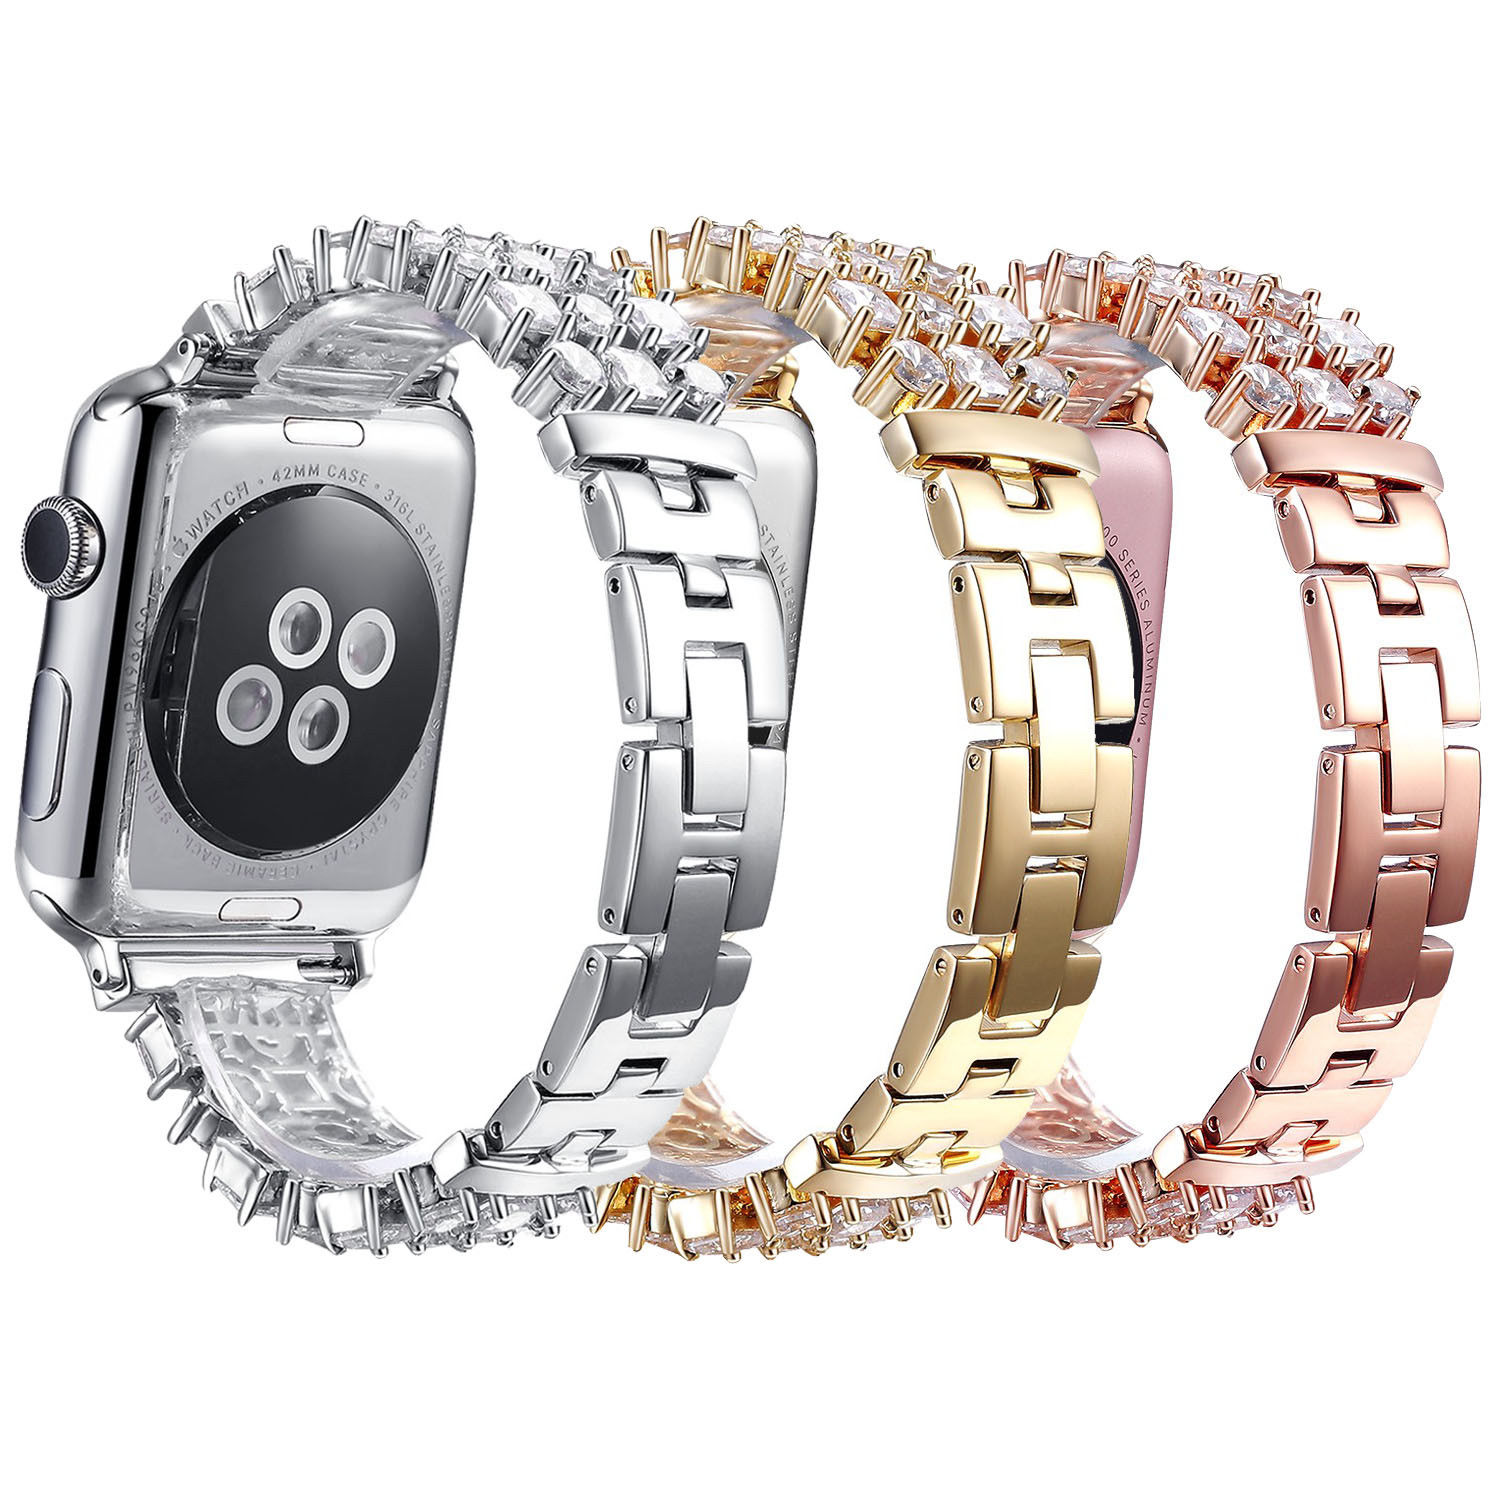 Glitter Bling Rhinestones Band for Apple Watch Series 3 2 1 Strap Stainless Steel Link Bracelet for iWatch Wristbands 38mm 42mm dahase bling rhinestone link bracelet for apple watch band stainless steel strap for iwatch 38mm 42mm series 1 2 3 belt